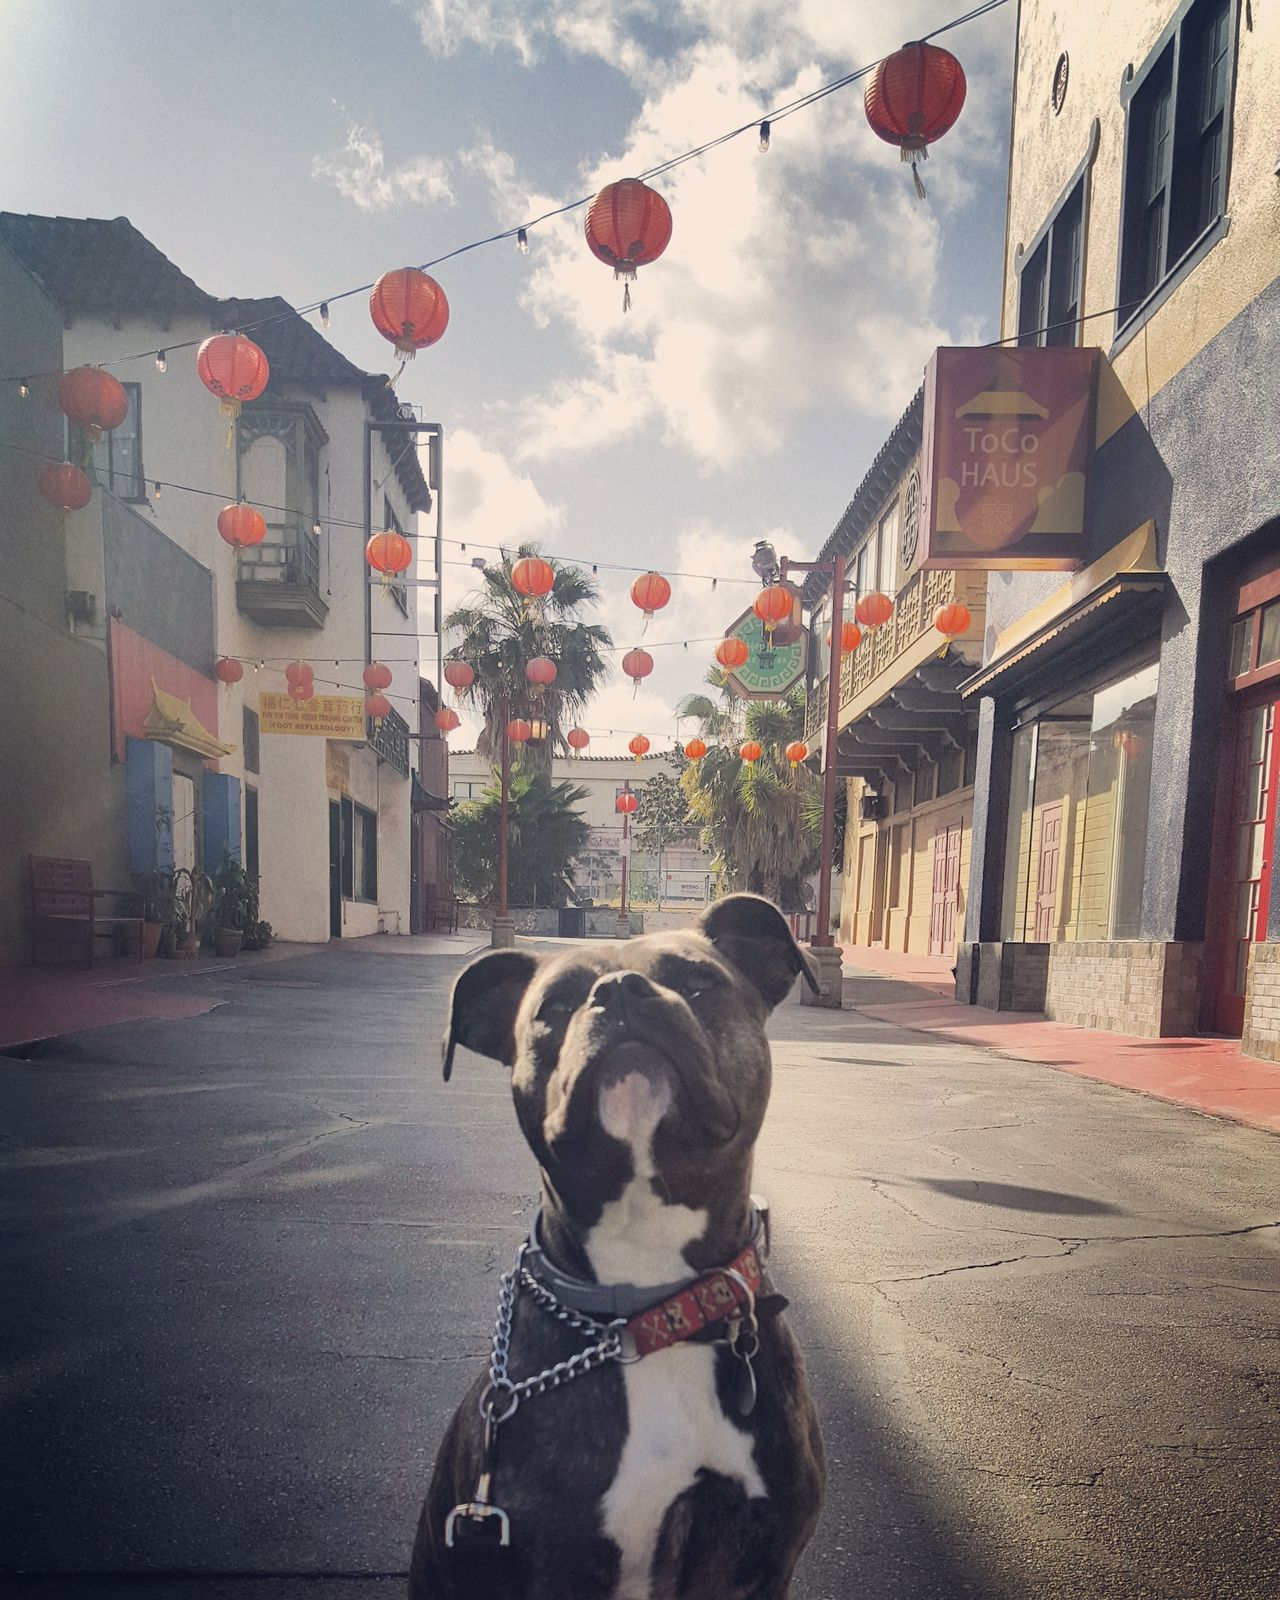 Domestic Animals Dog One Animal Pets Building Exterior Outdoors No People Day Architecture City Dogs Of EyeEm Dogslife Pet Photography  Rescuedog Pitbulllife Bestfreinds Pitbullmixes Pets Of Eyeem Mutts AmericanBulldog Chinatown LA